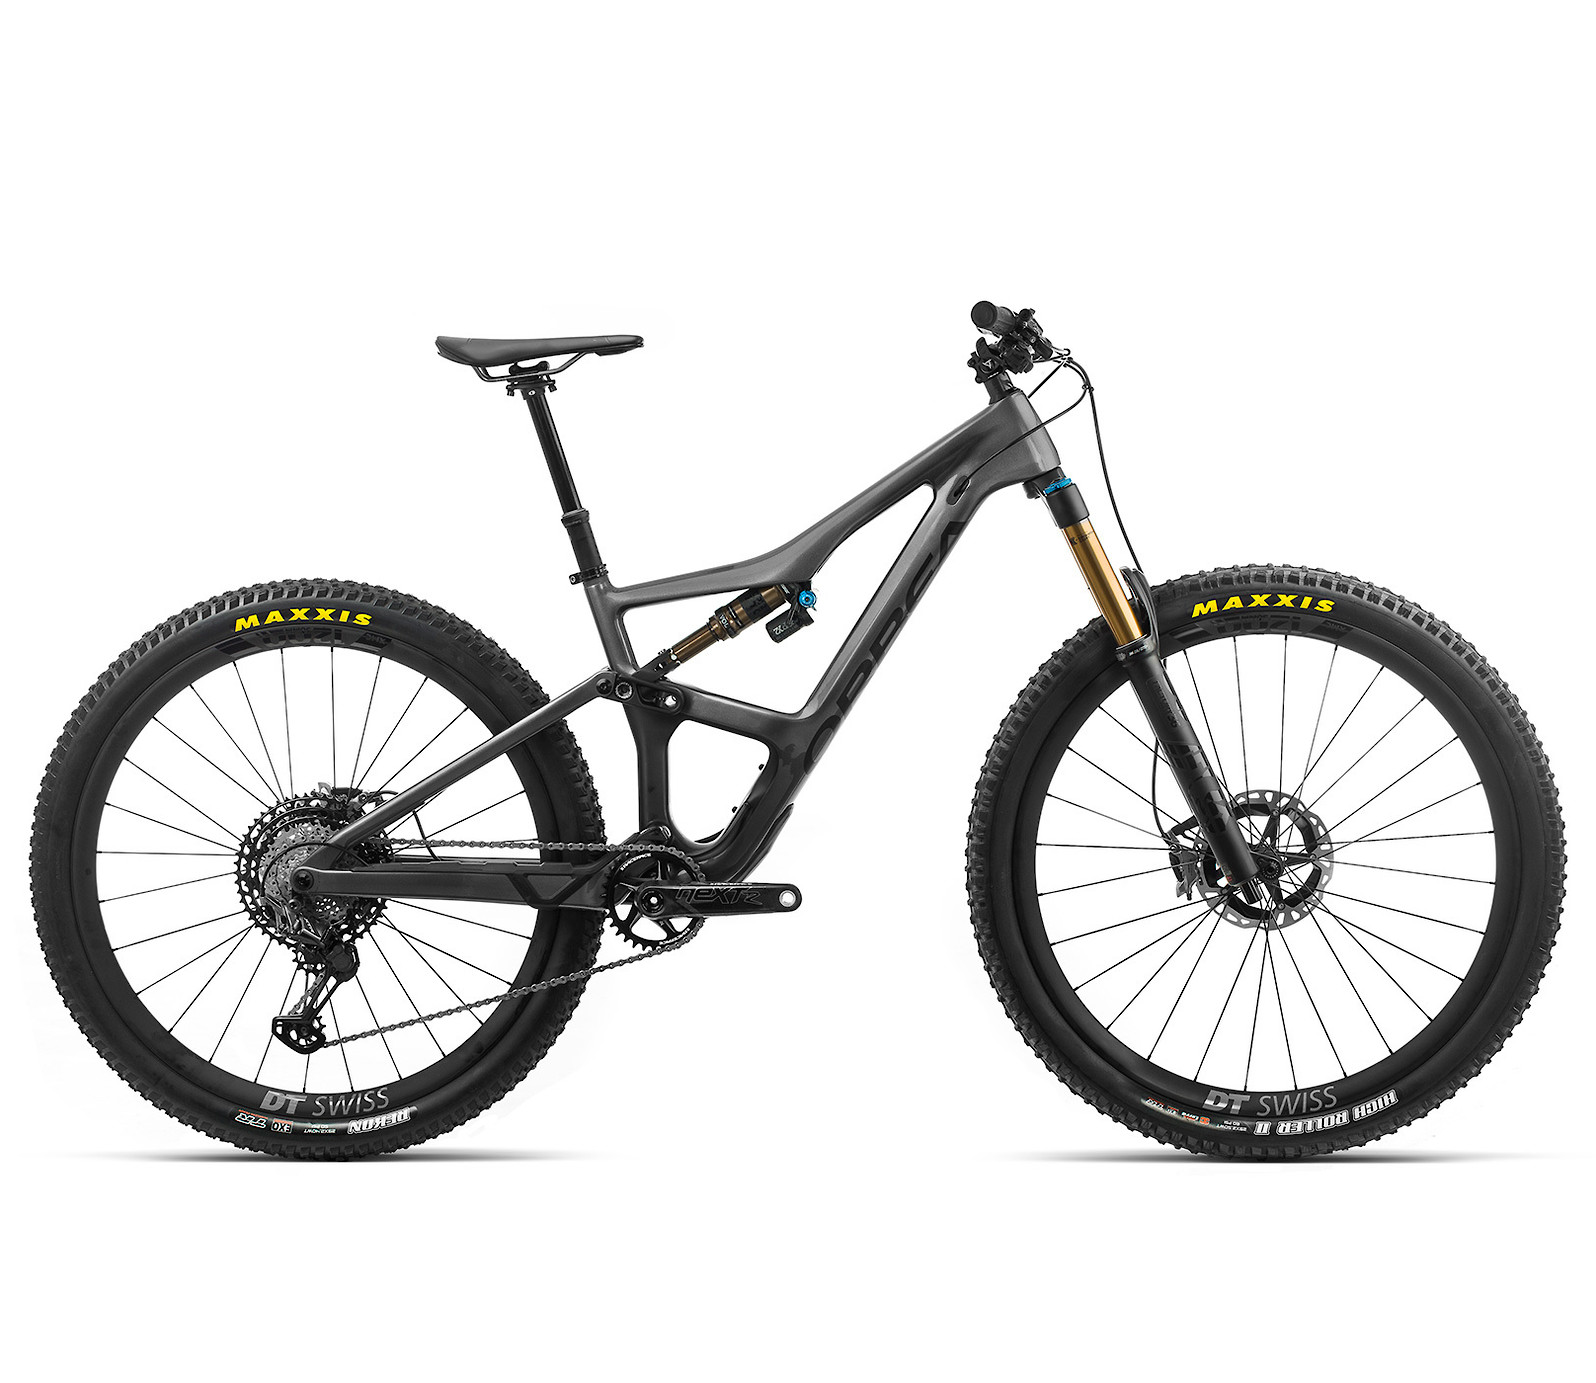 2020 Orbea Occam M-LTD in anthracite glitter/black